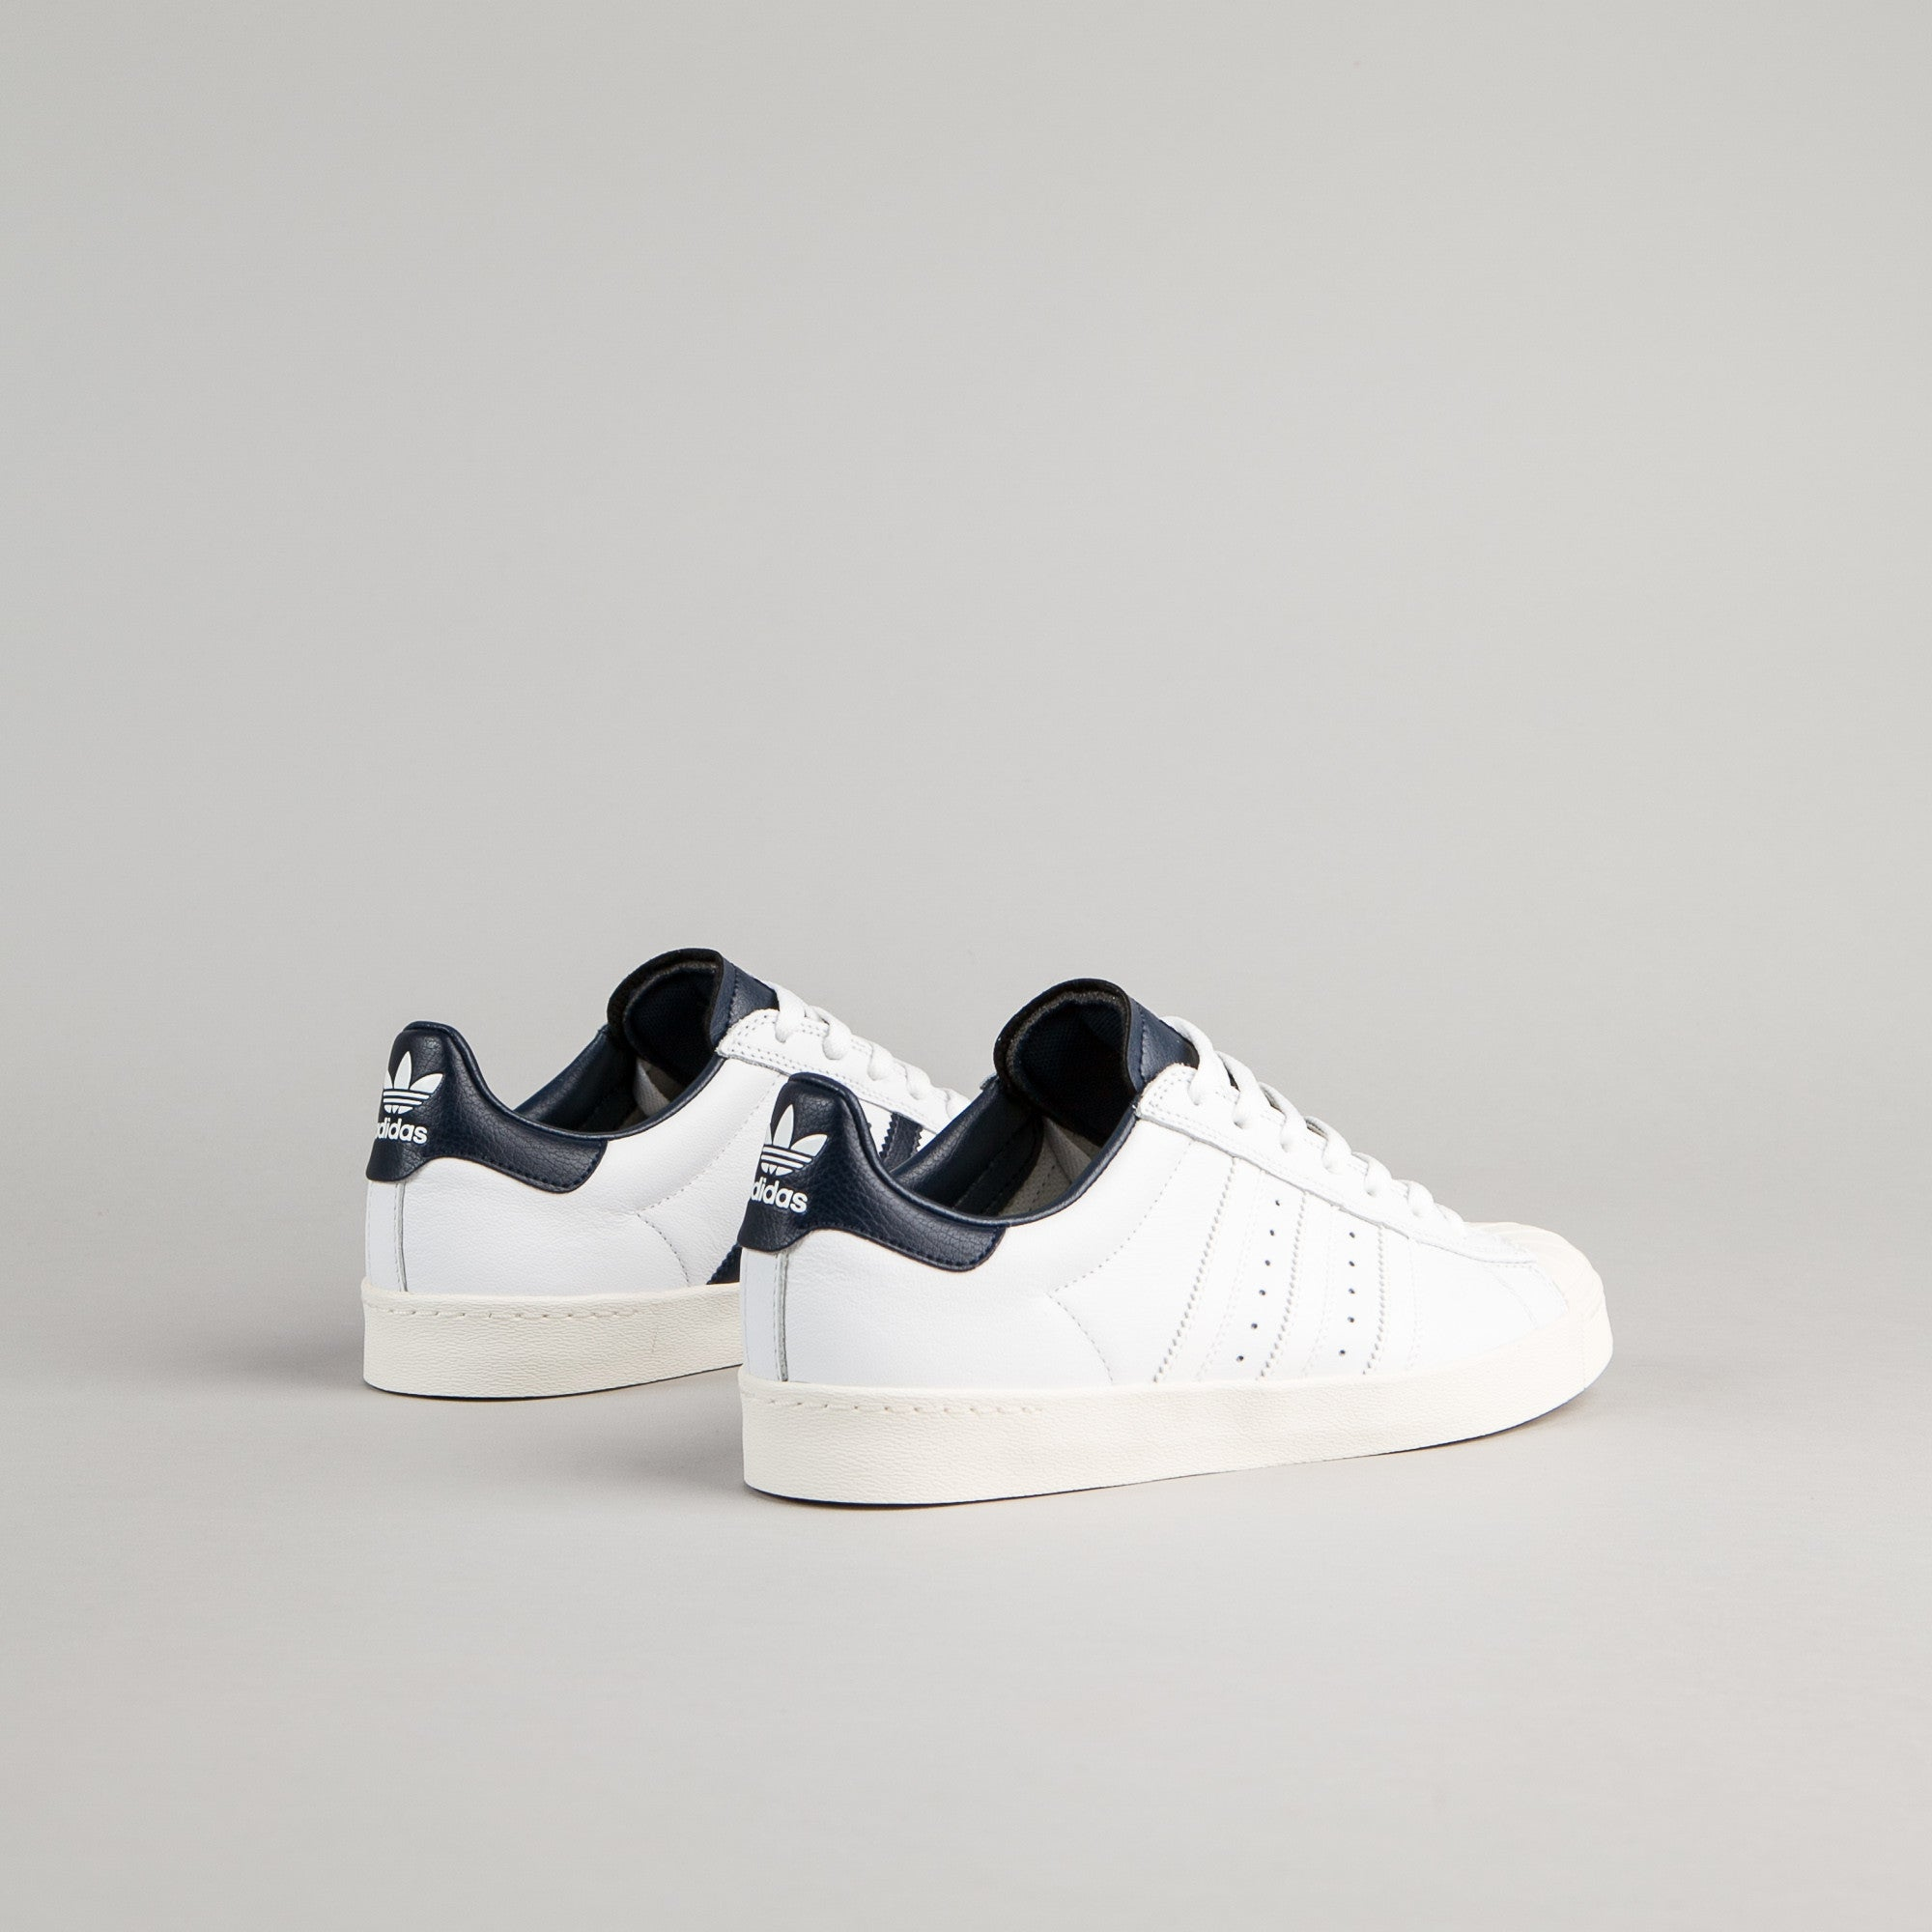 NEW Cheap Adidas WOMEN'S ORIGINALS SUPERSTAR UP STRAP